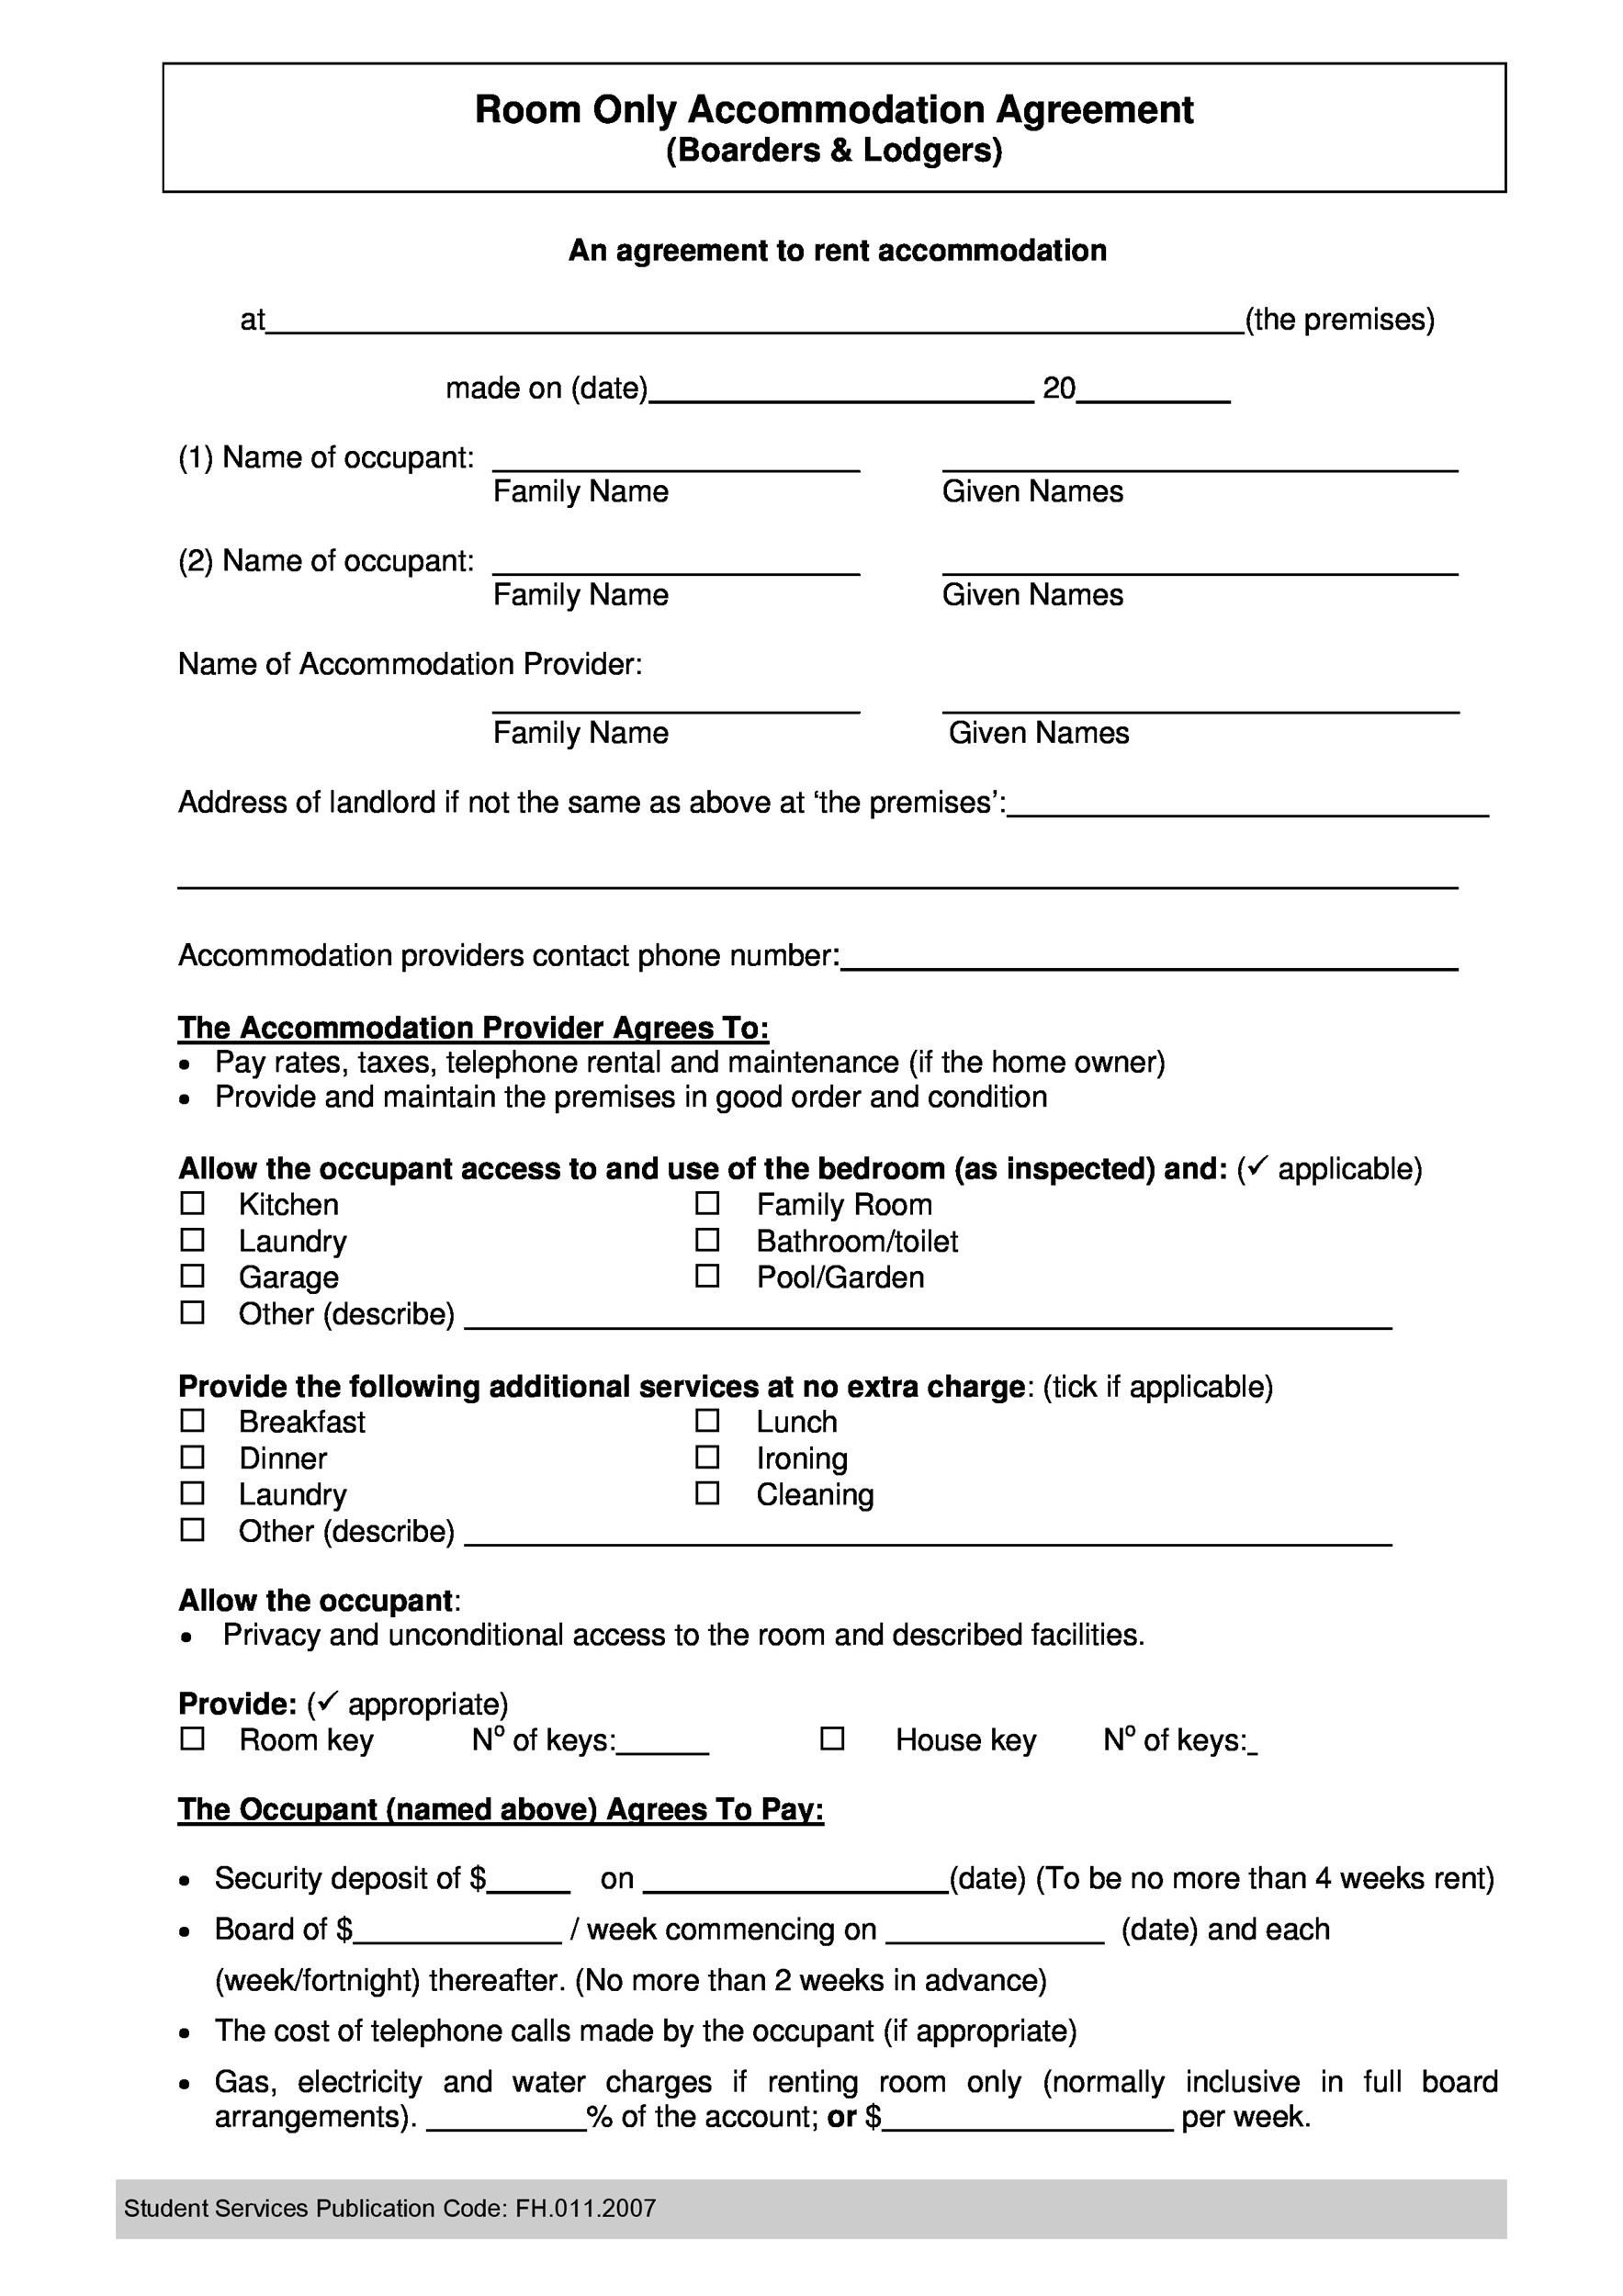 005 Fearsome Simple Room Rental Agreement Template Highest Quality  FreeFull